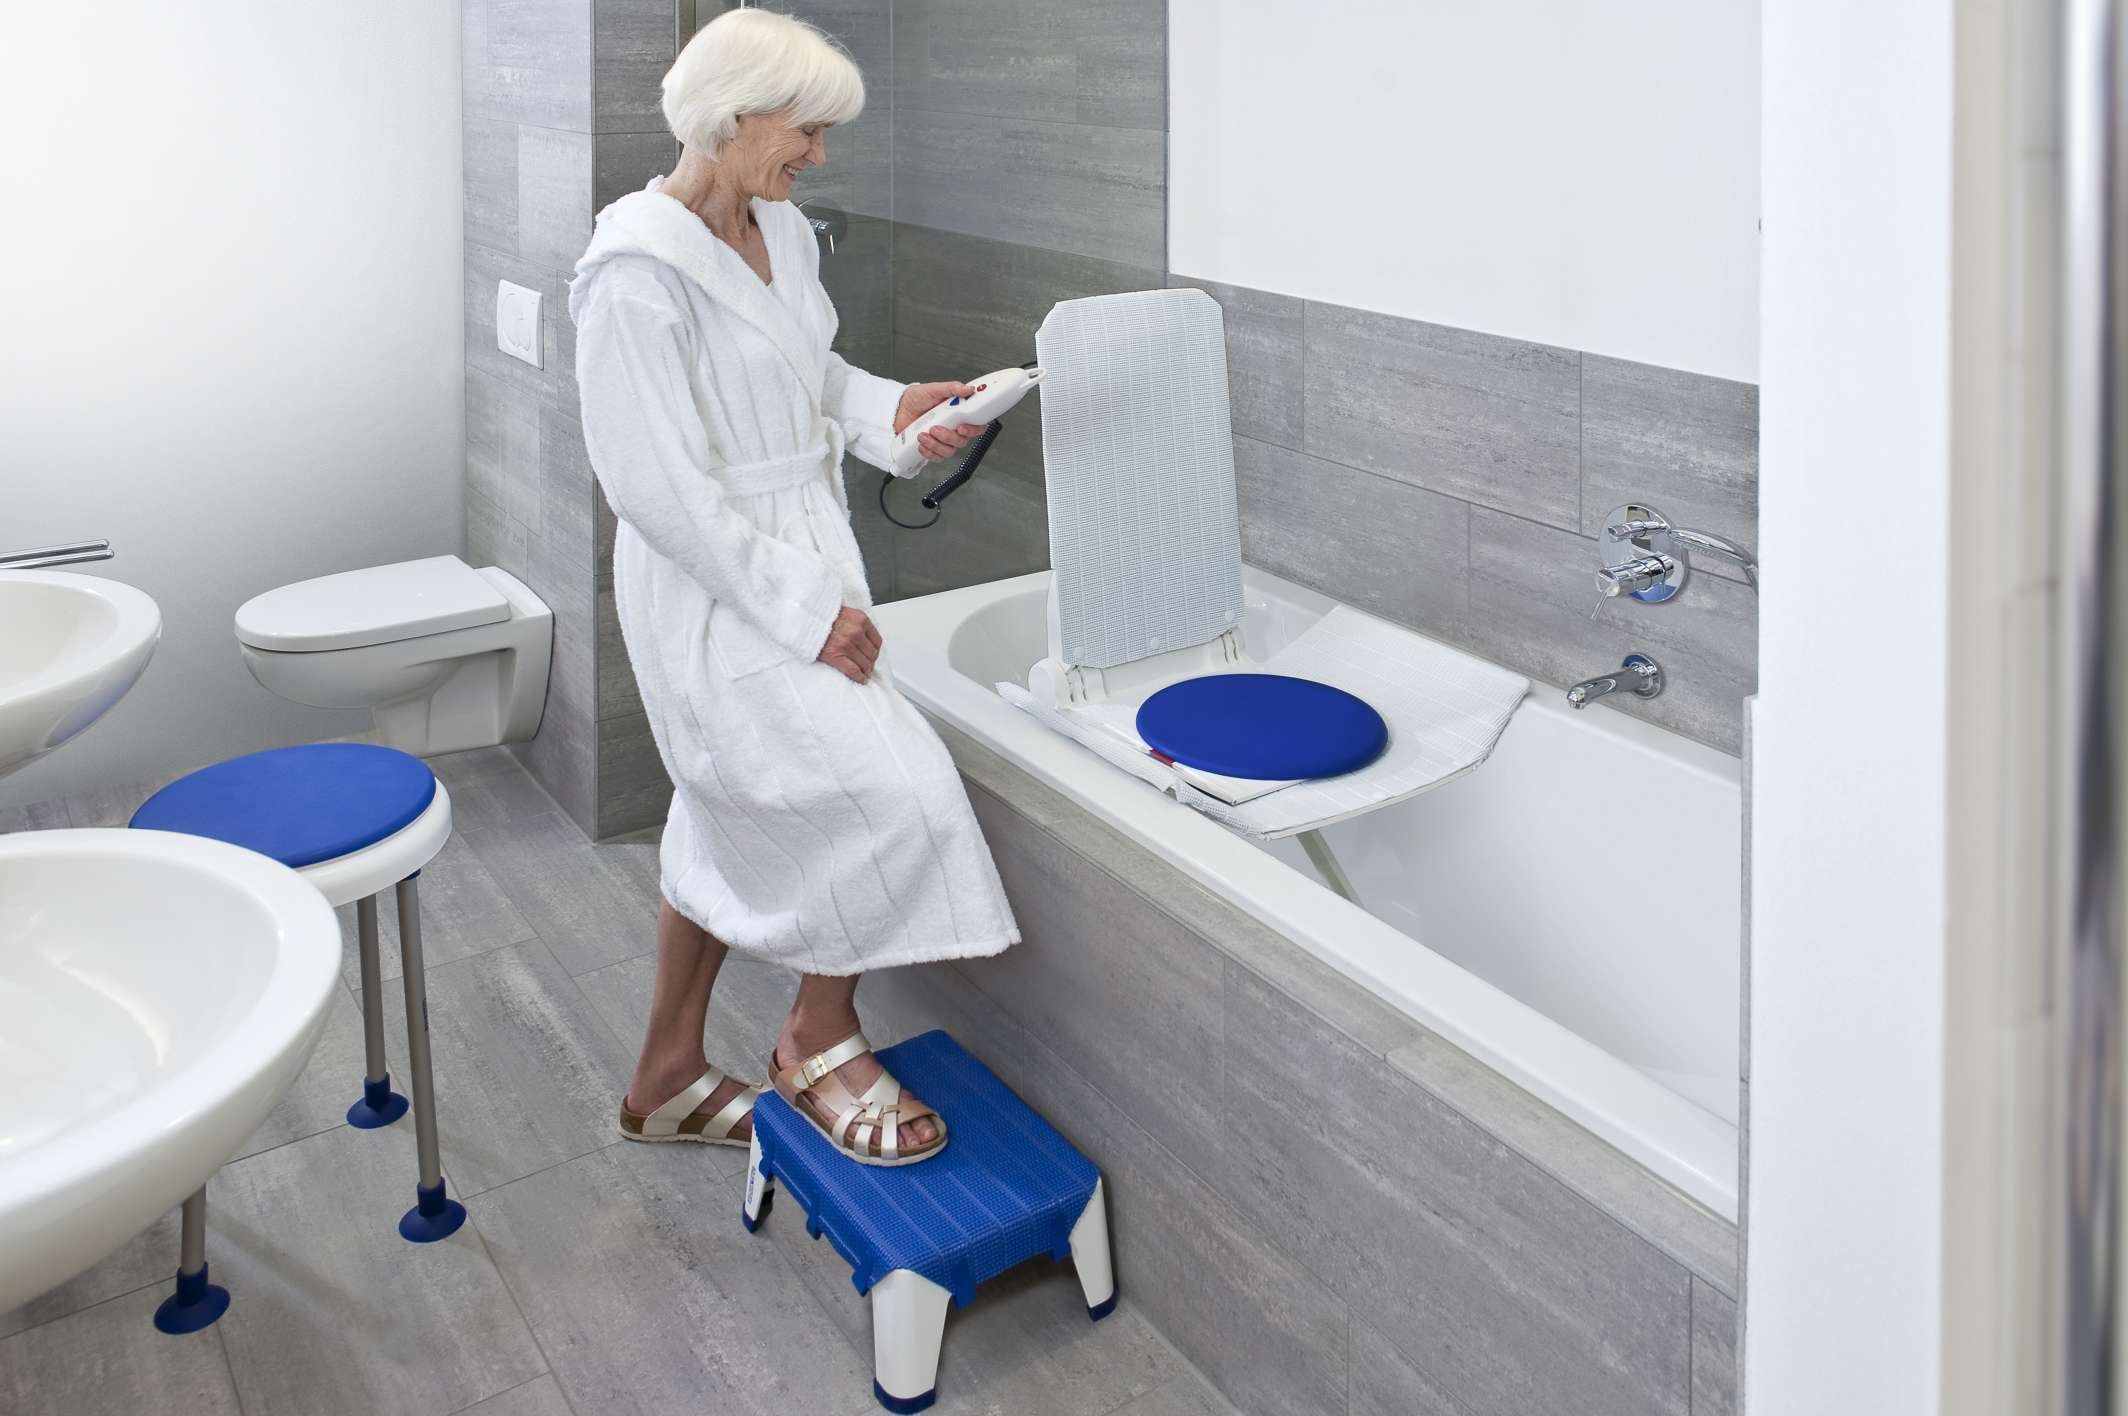 Bathroom Aids For Handicapped - http://resonare.info/bathroom-aids ...